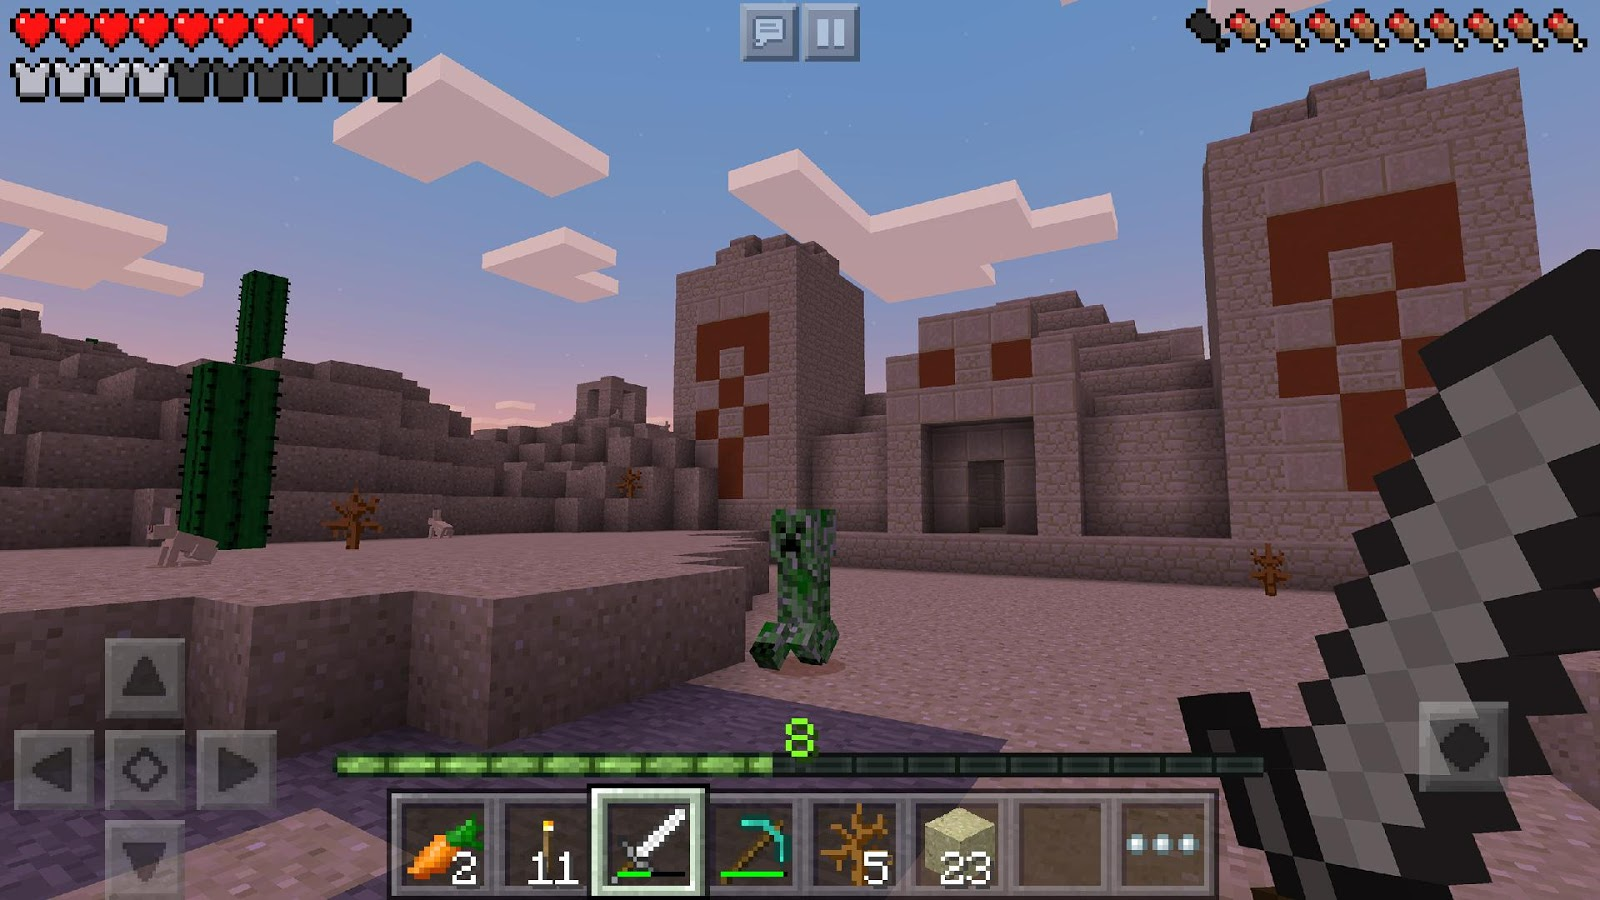 Minecraft APK Download Android Arcade Games - Skin para minecraft android y pc